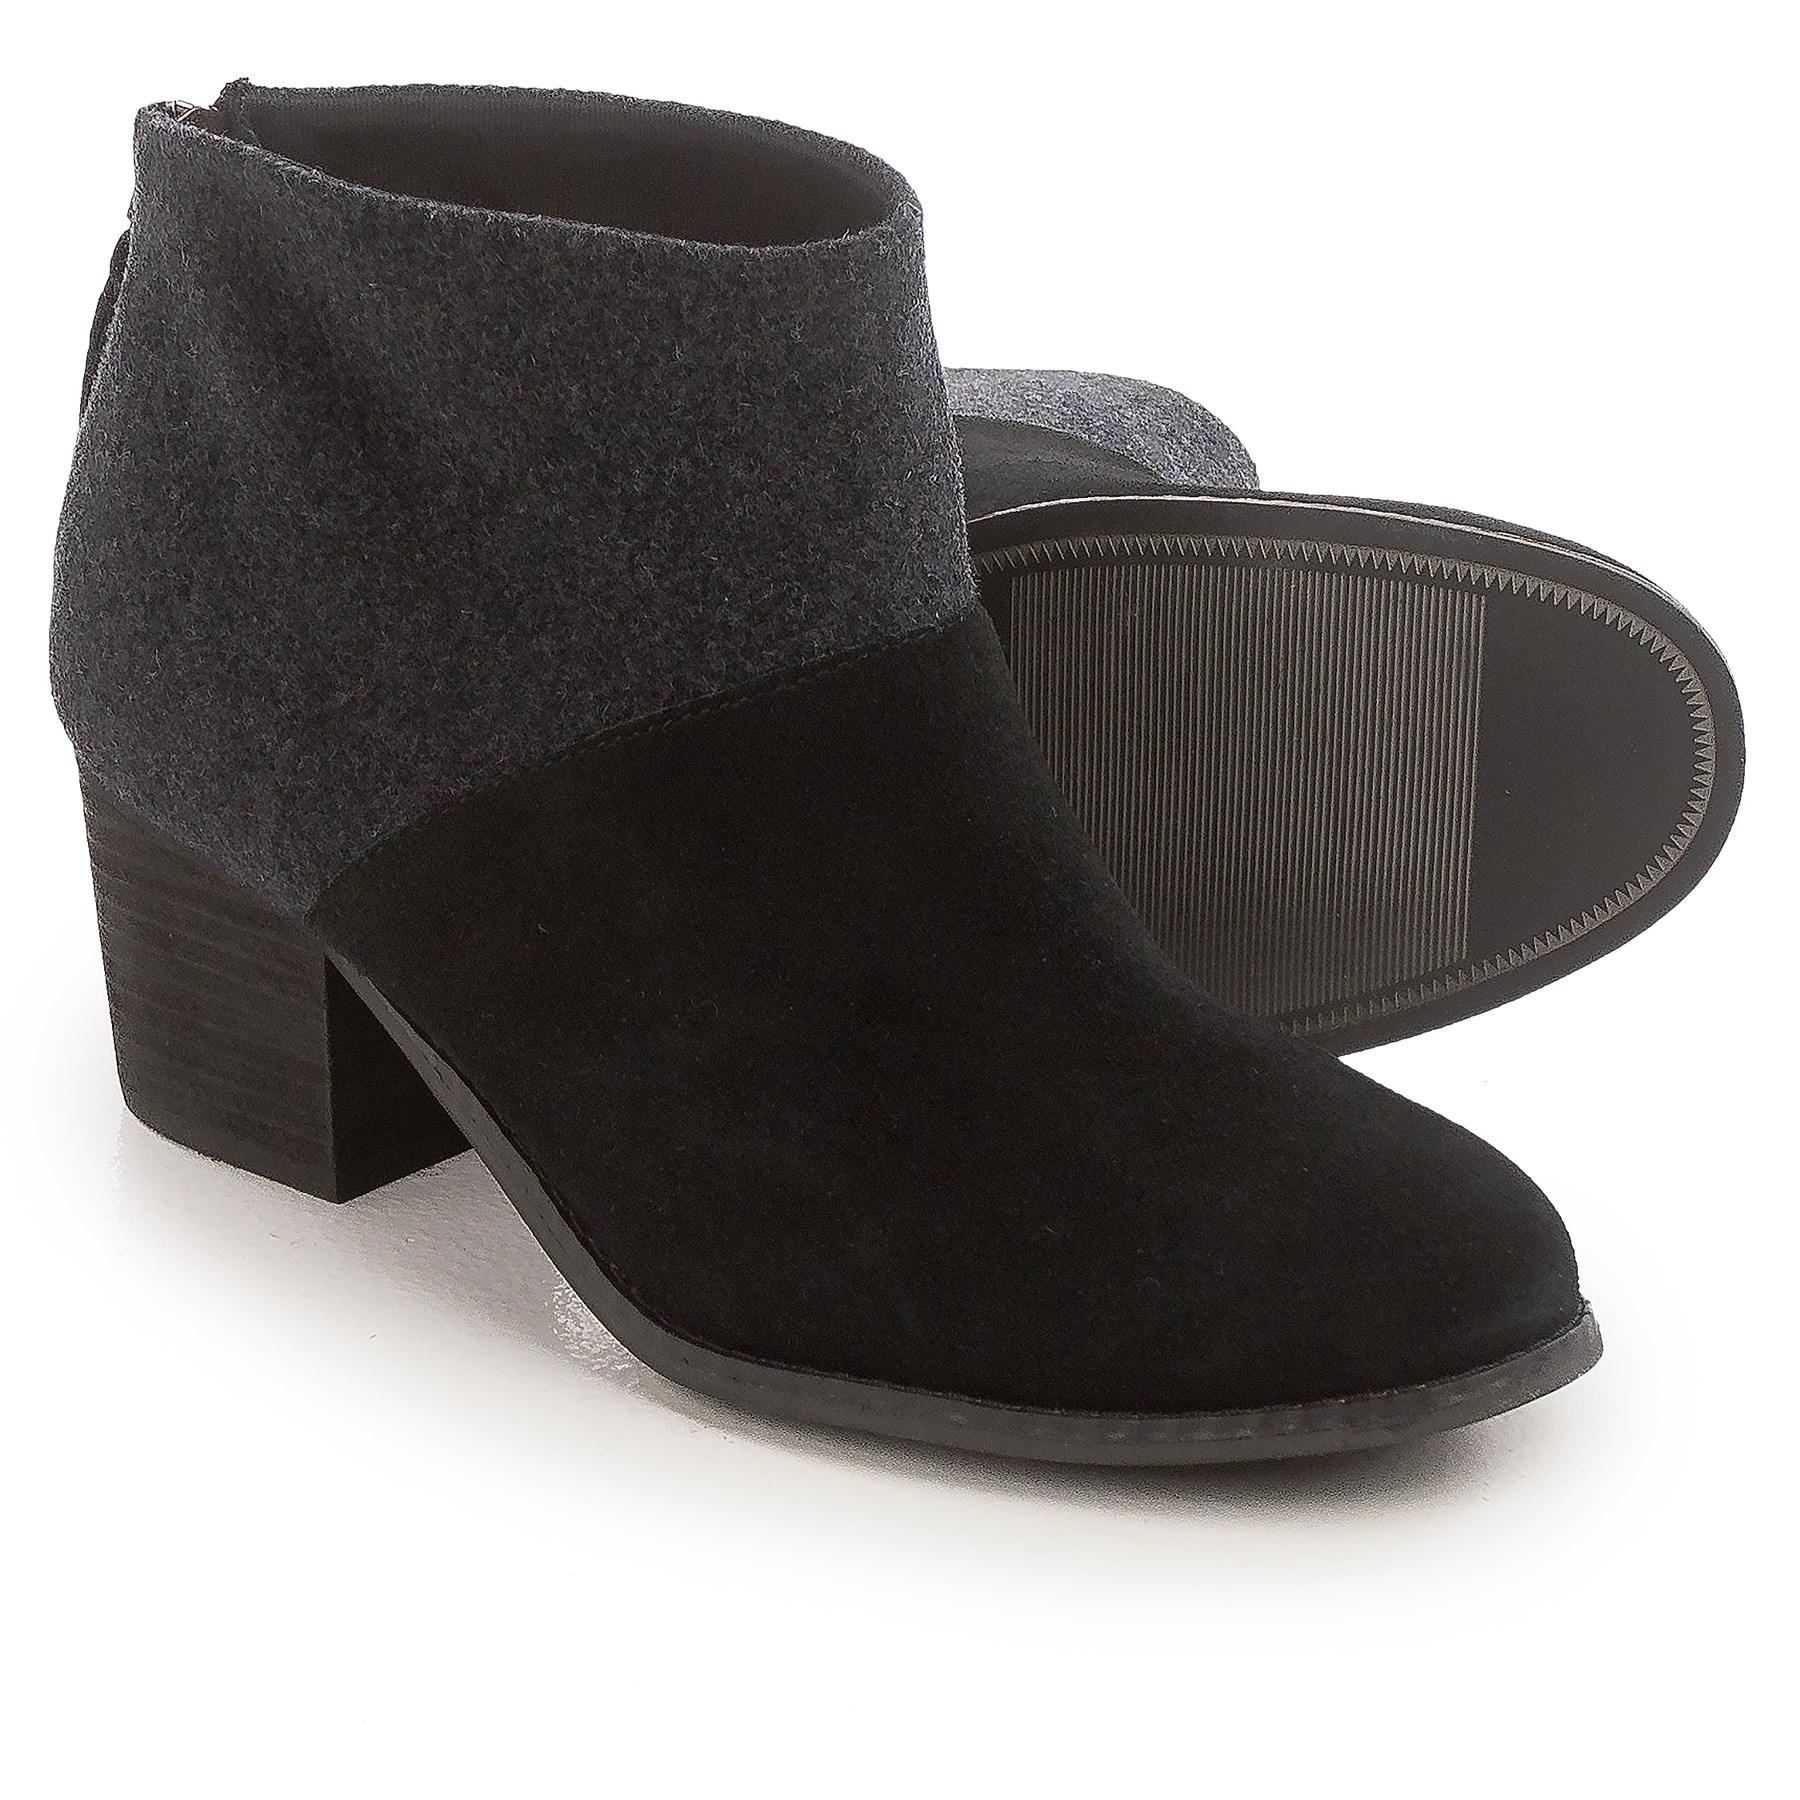 ae0a06bf3e4 Lyst - TOMS Leila Wool Felt Ankle Boots (for Women) in Black